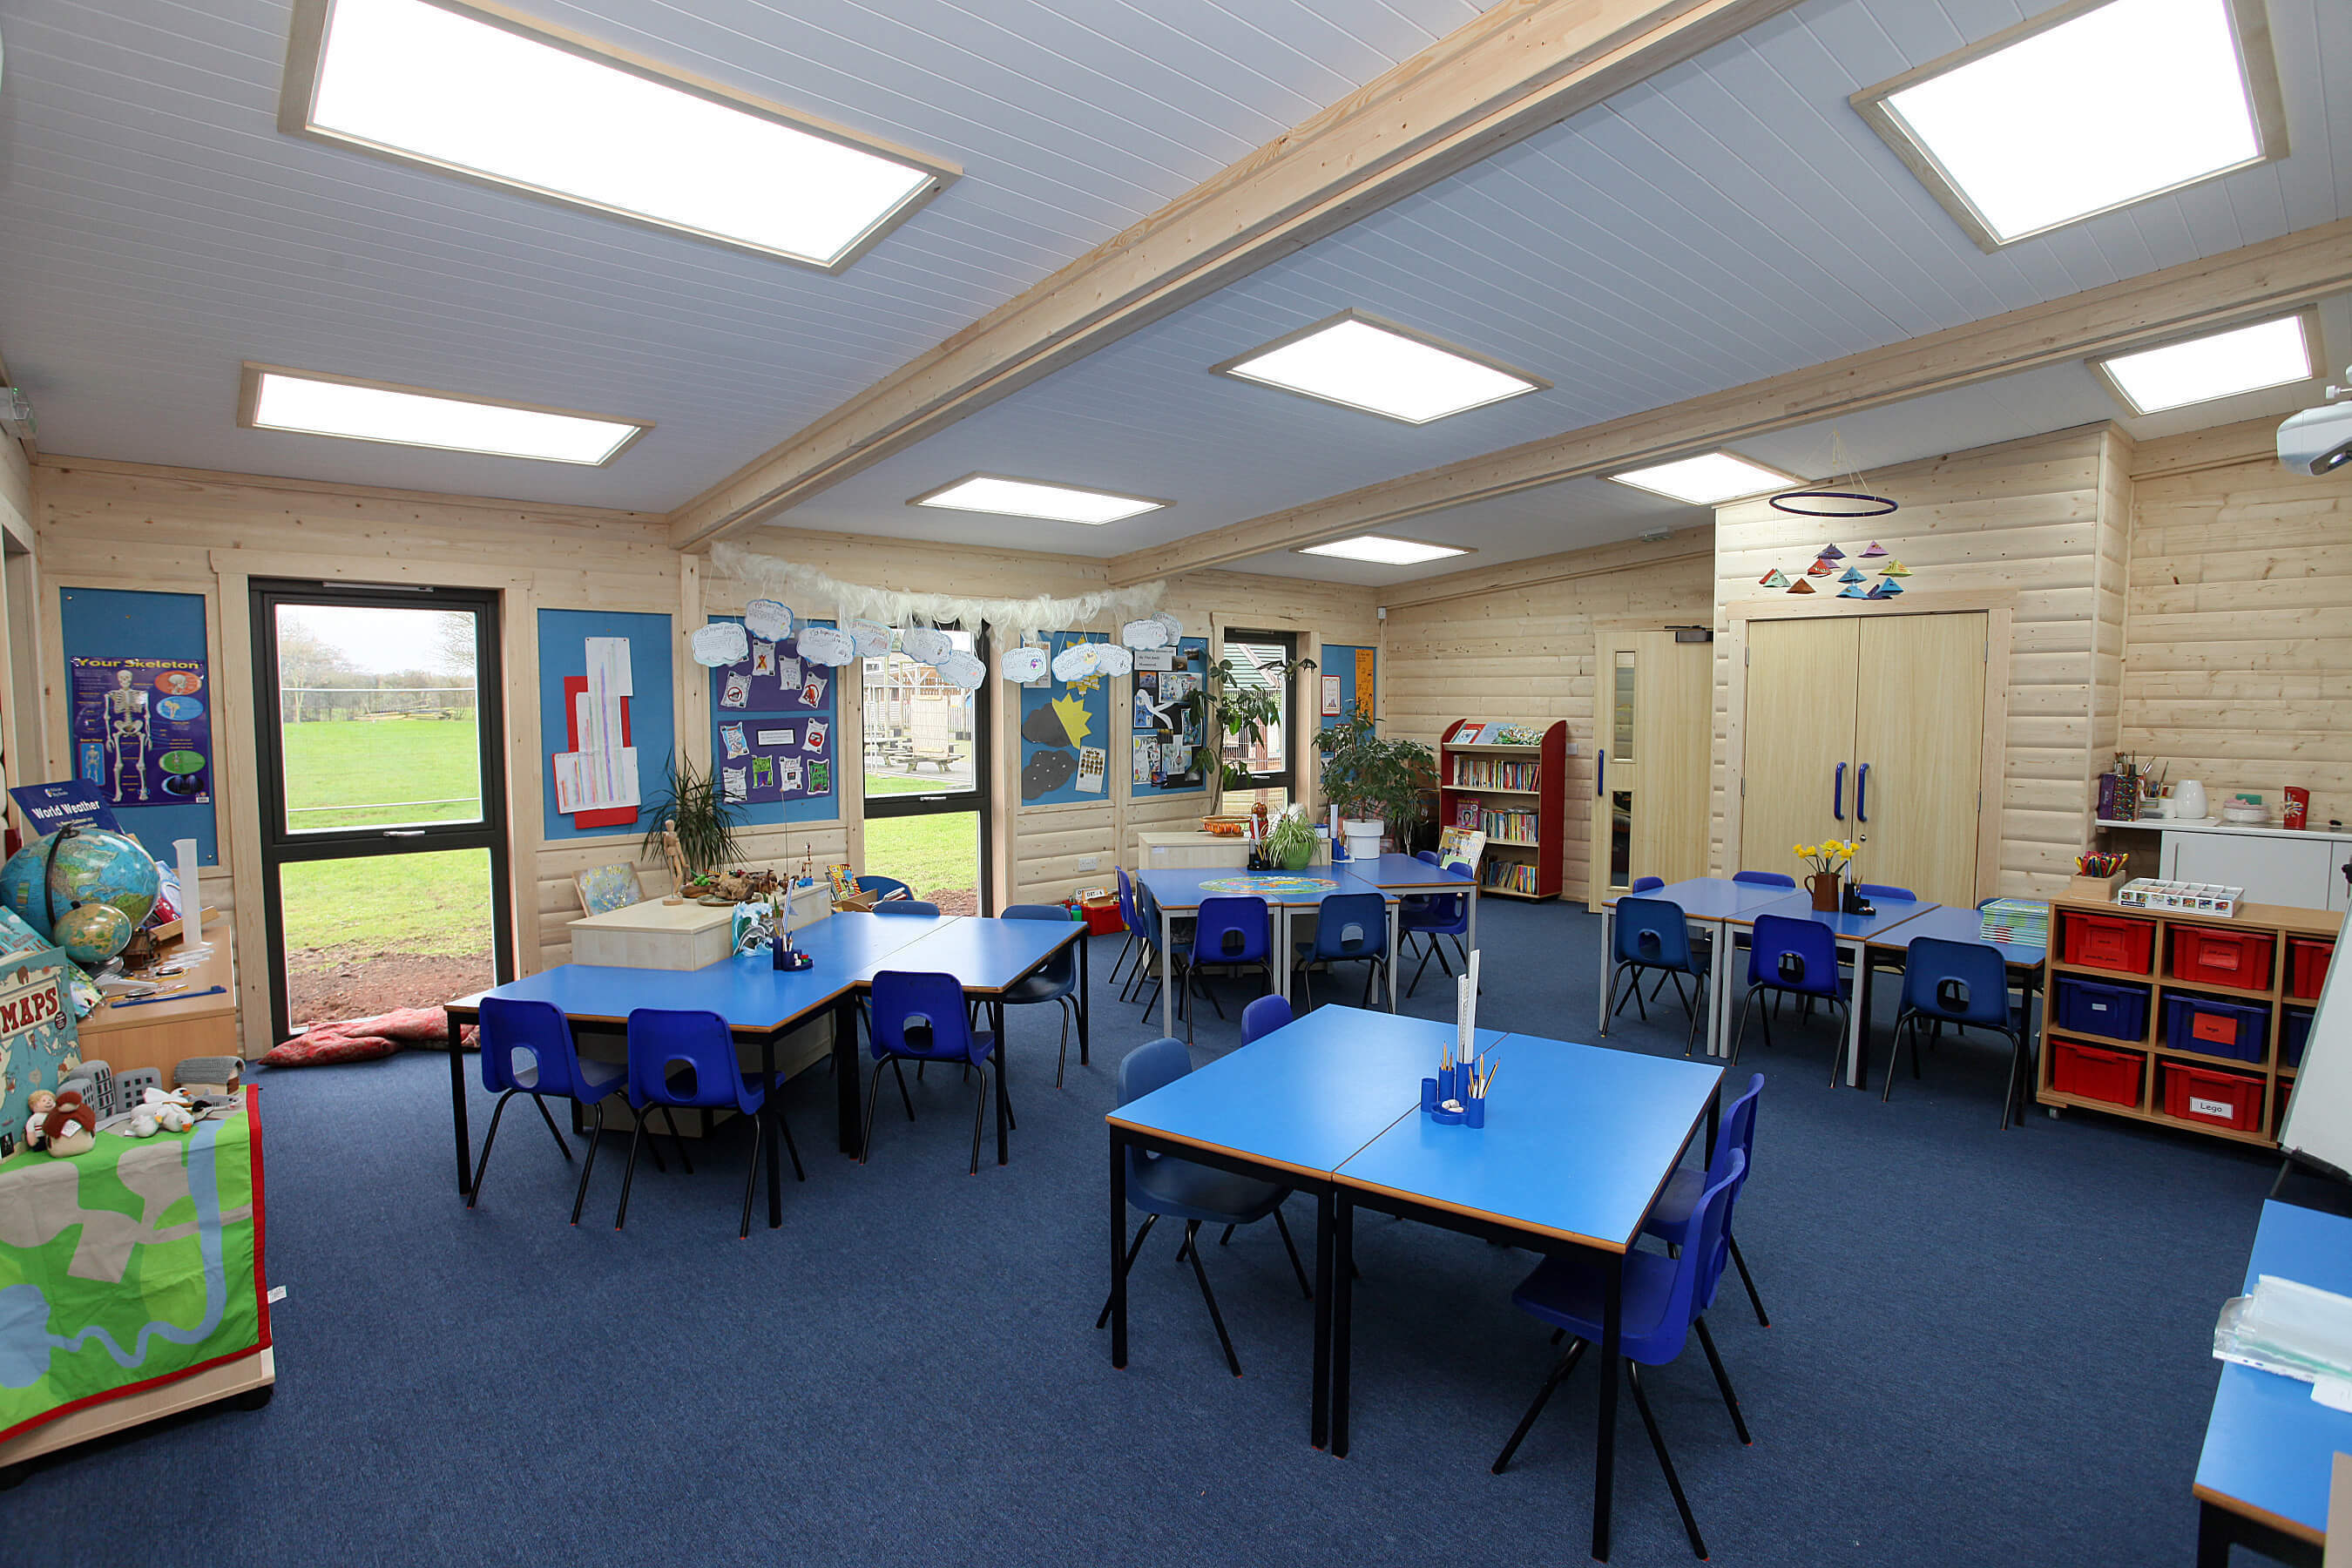 Modular Classroom Uk : Modular classrooms school buildings norwegian log